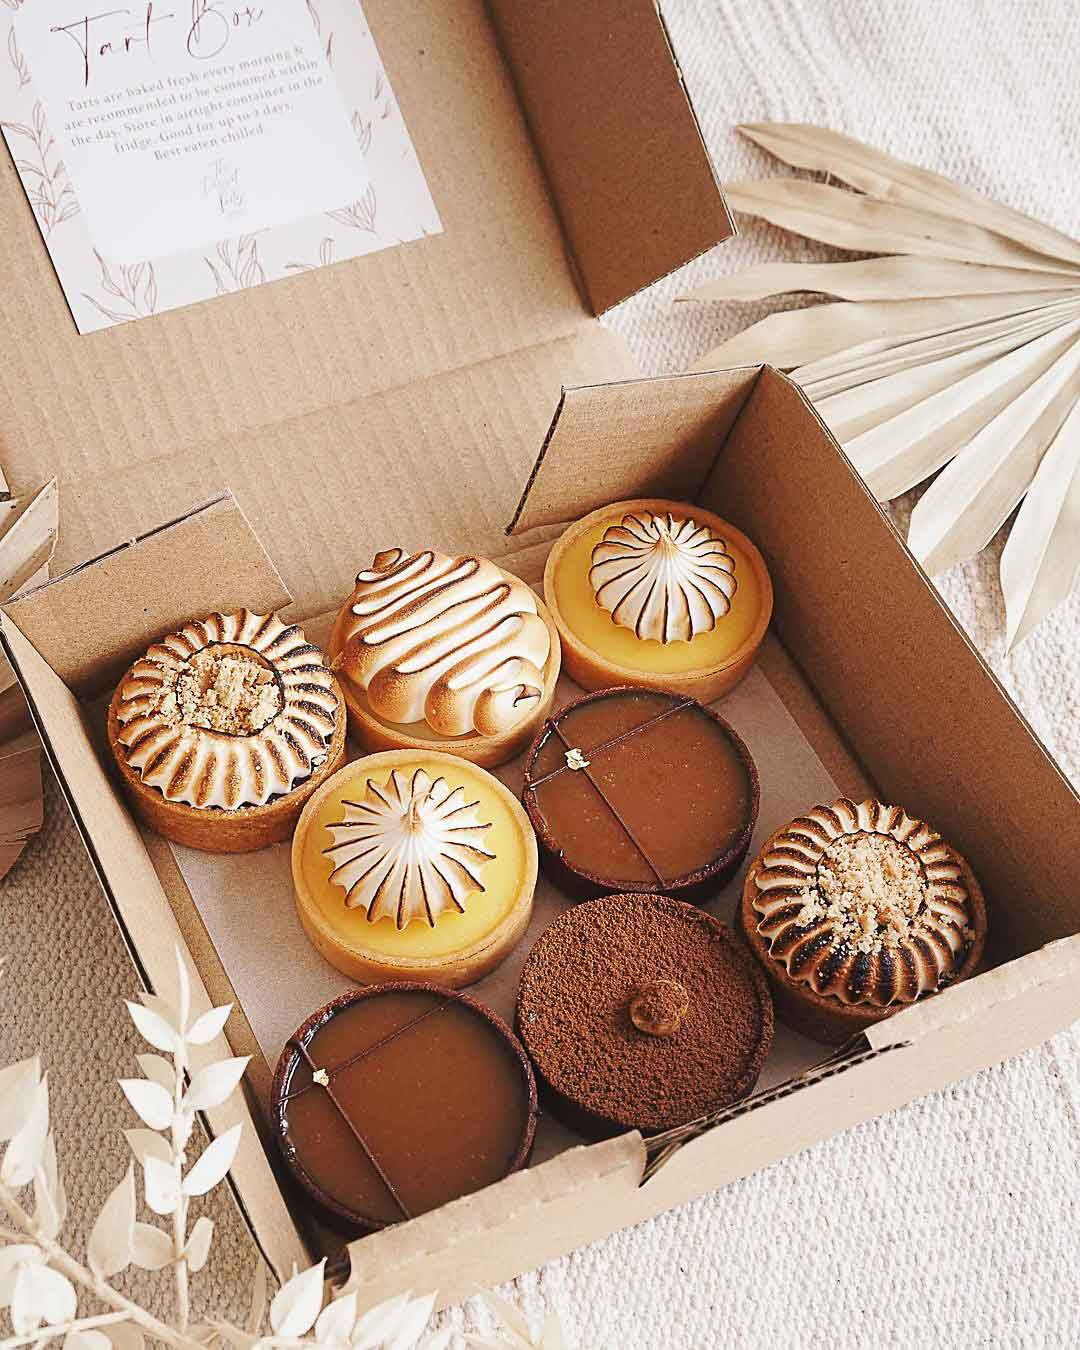 Dessert box delivery - The Dessert Party